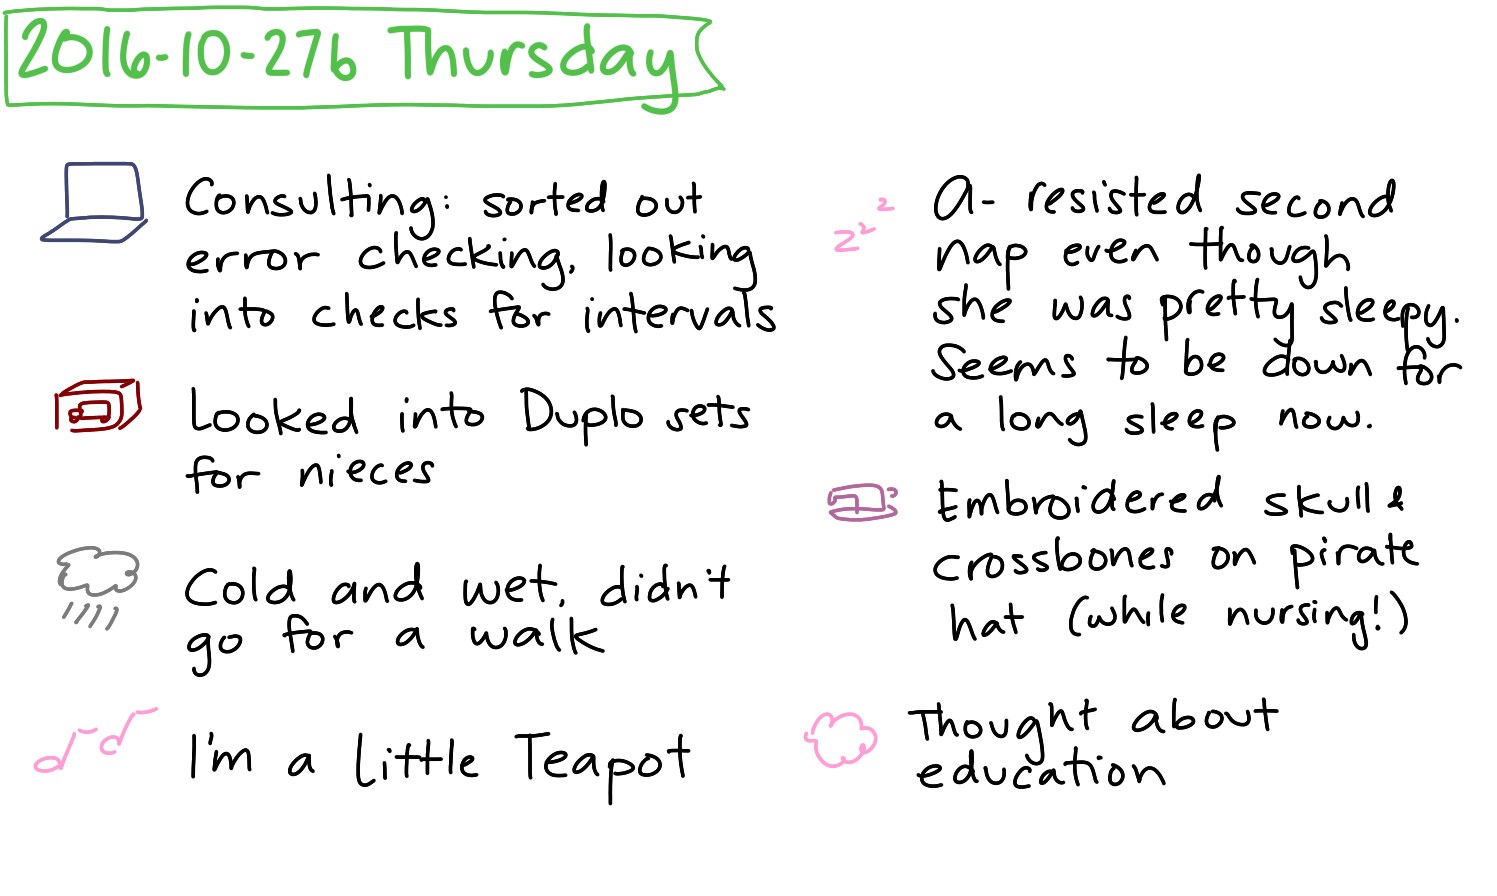 2016-10-27b Thursday #daily #journal.png